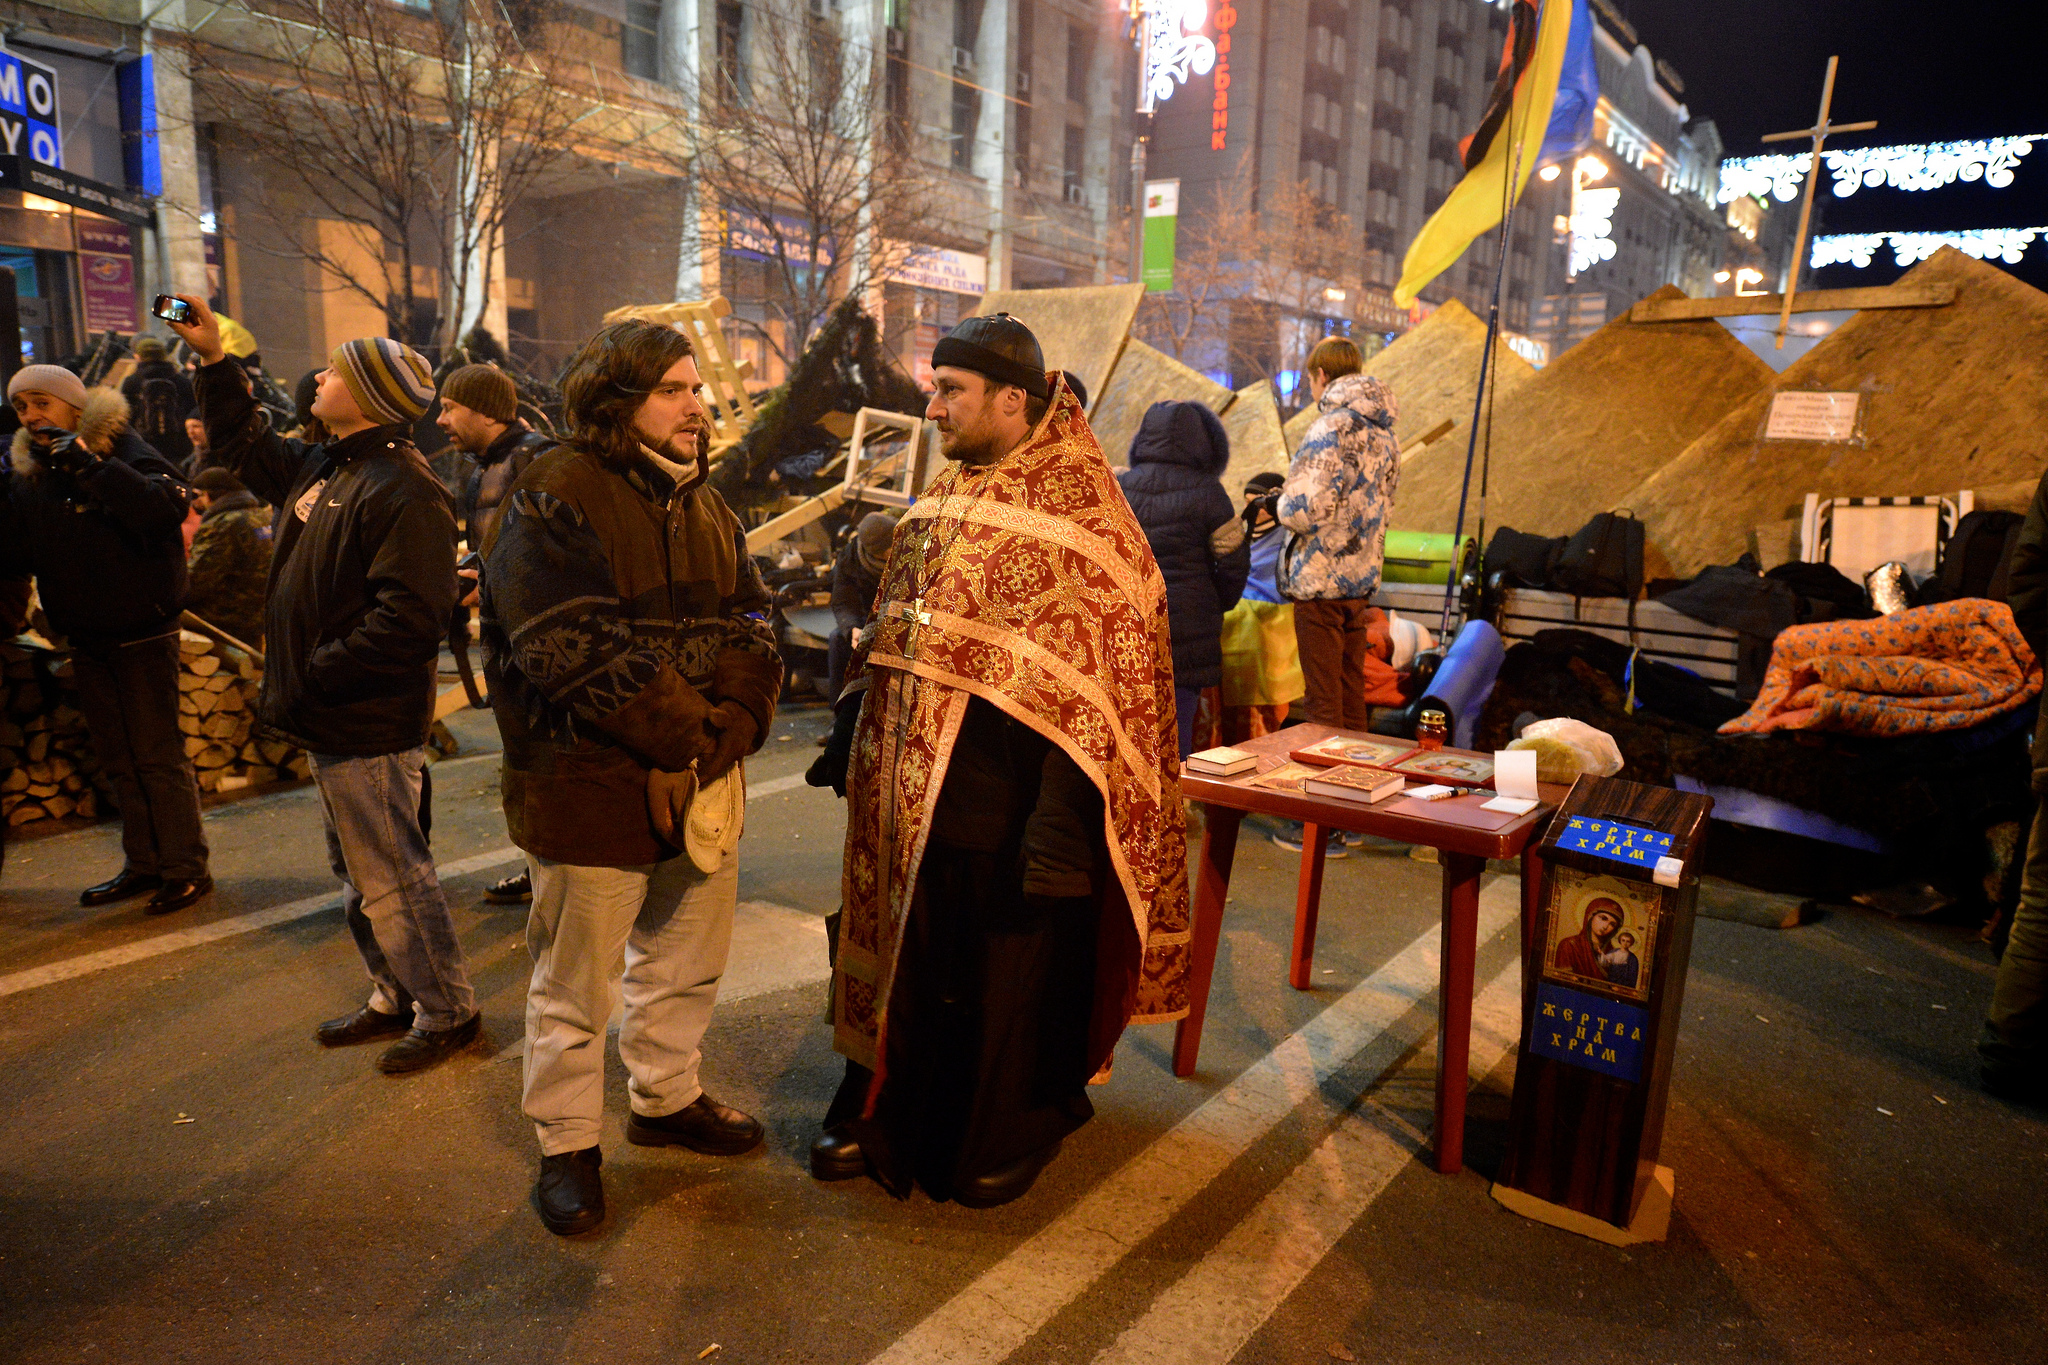 Priest on duty during Euromaidan, December 2013. Photographer: Ivan Bandura